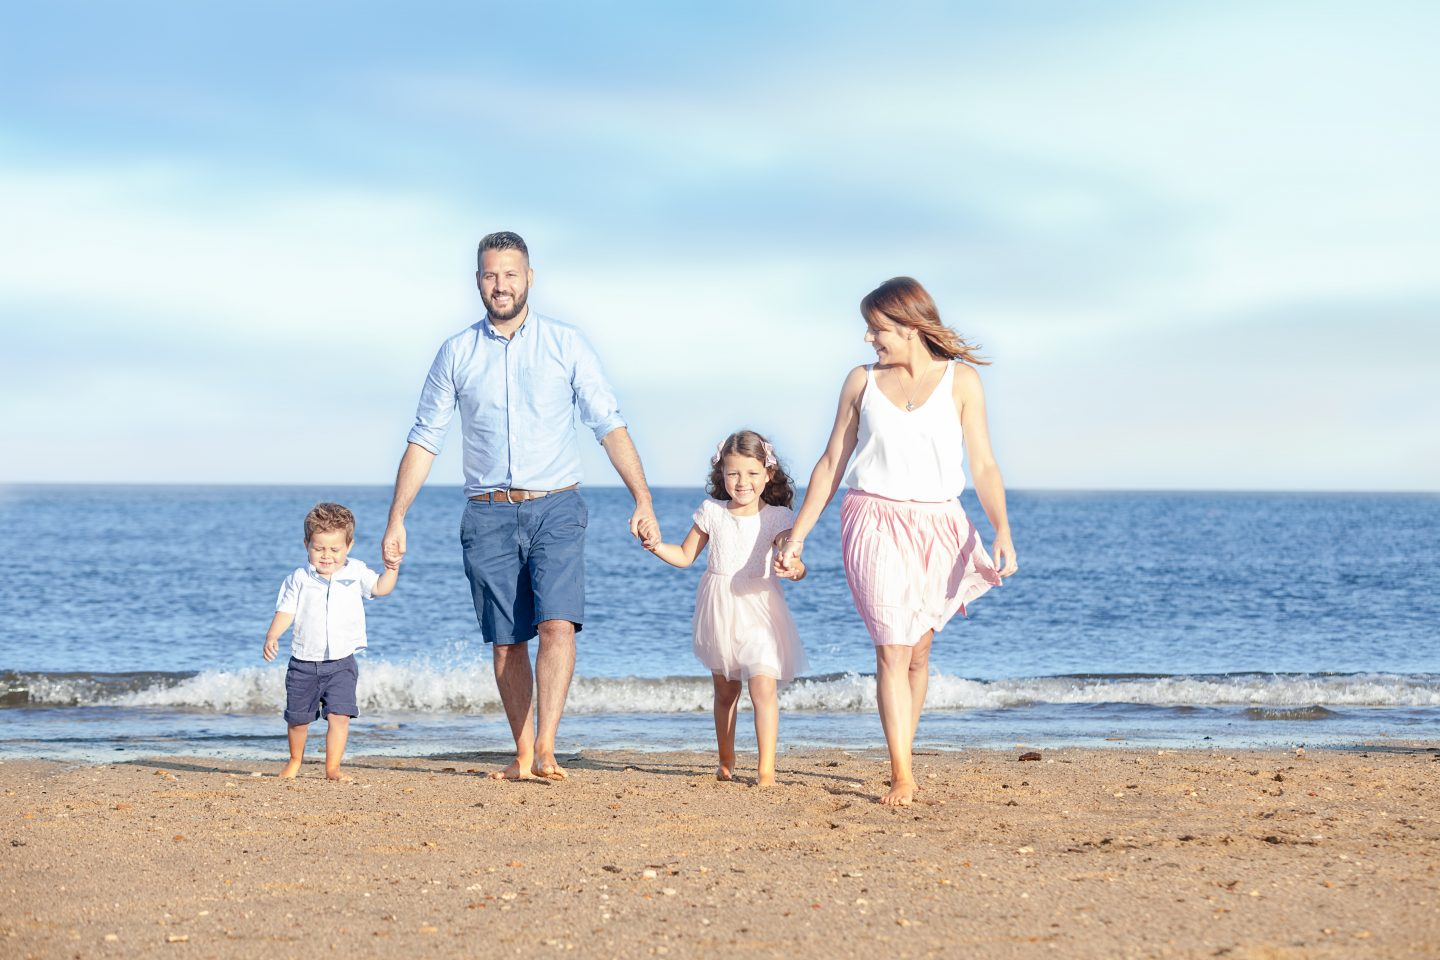 Family Lifestyle Portraits: Discover my 5 Top Tips for Getting Awesome Pictures